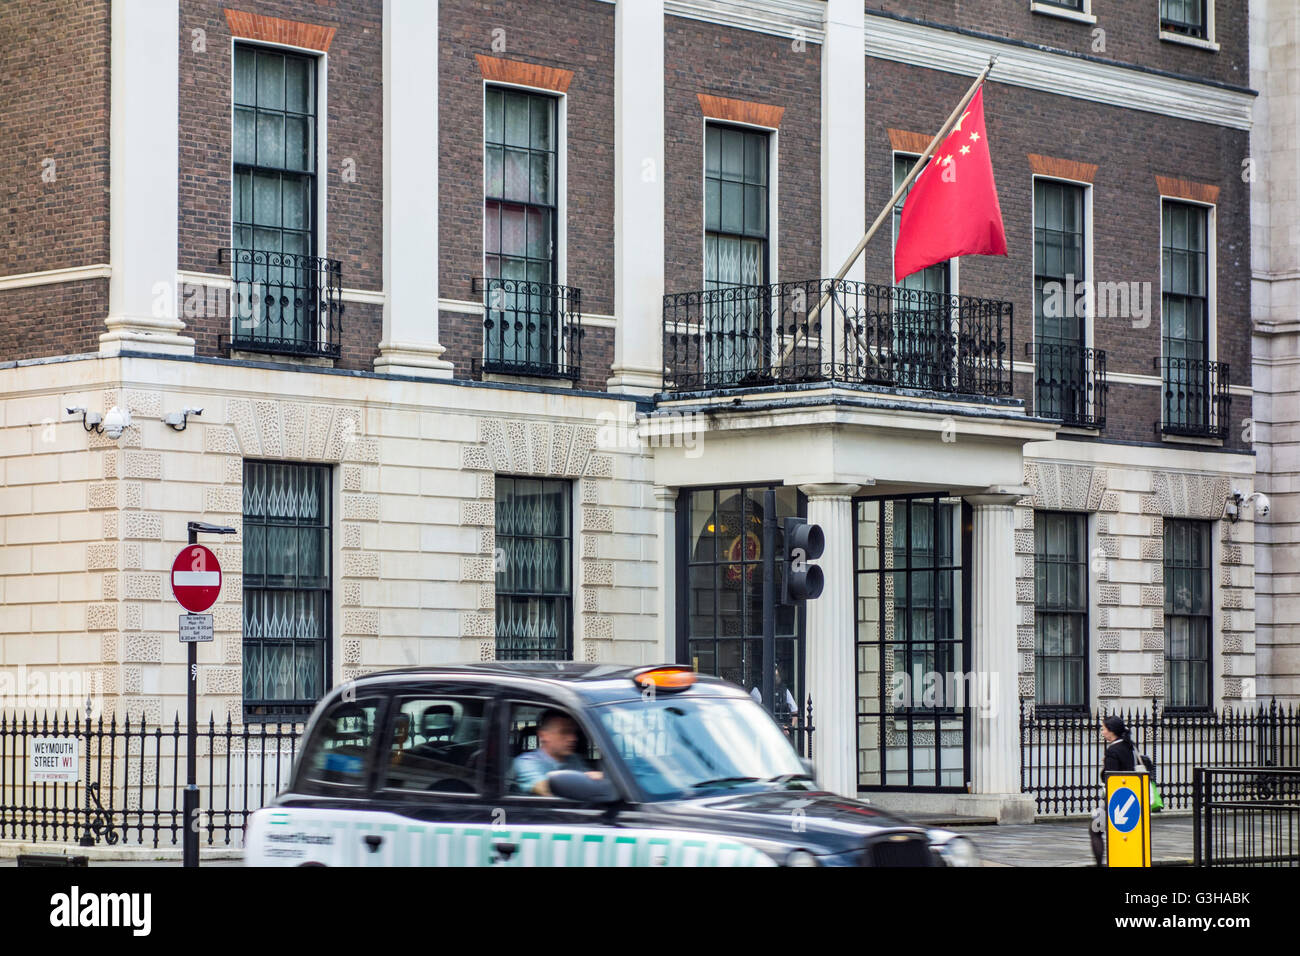 Embassy of the People's Republic of China in the United Kingdom of Great Britain and Northern Ireland - Stock Image